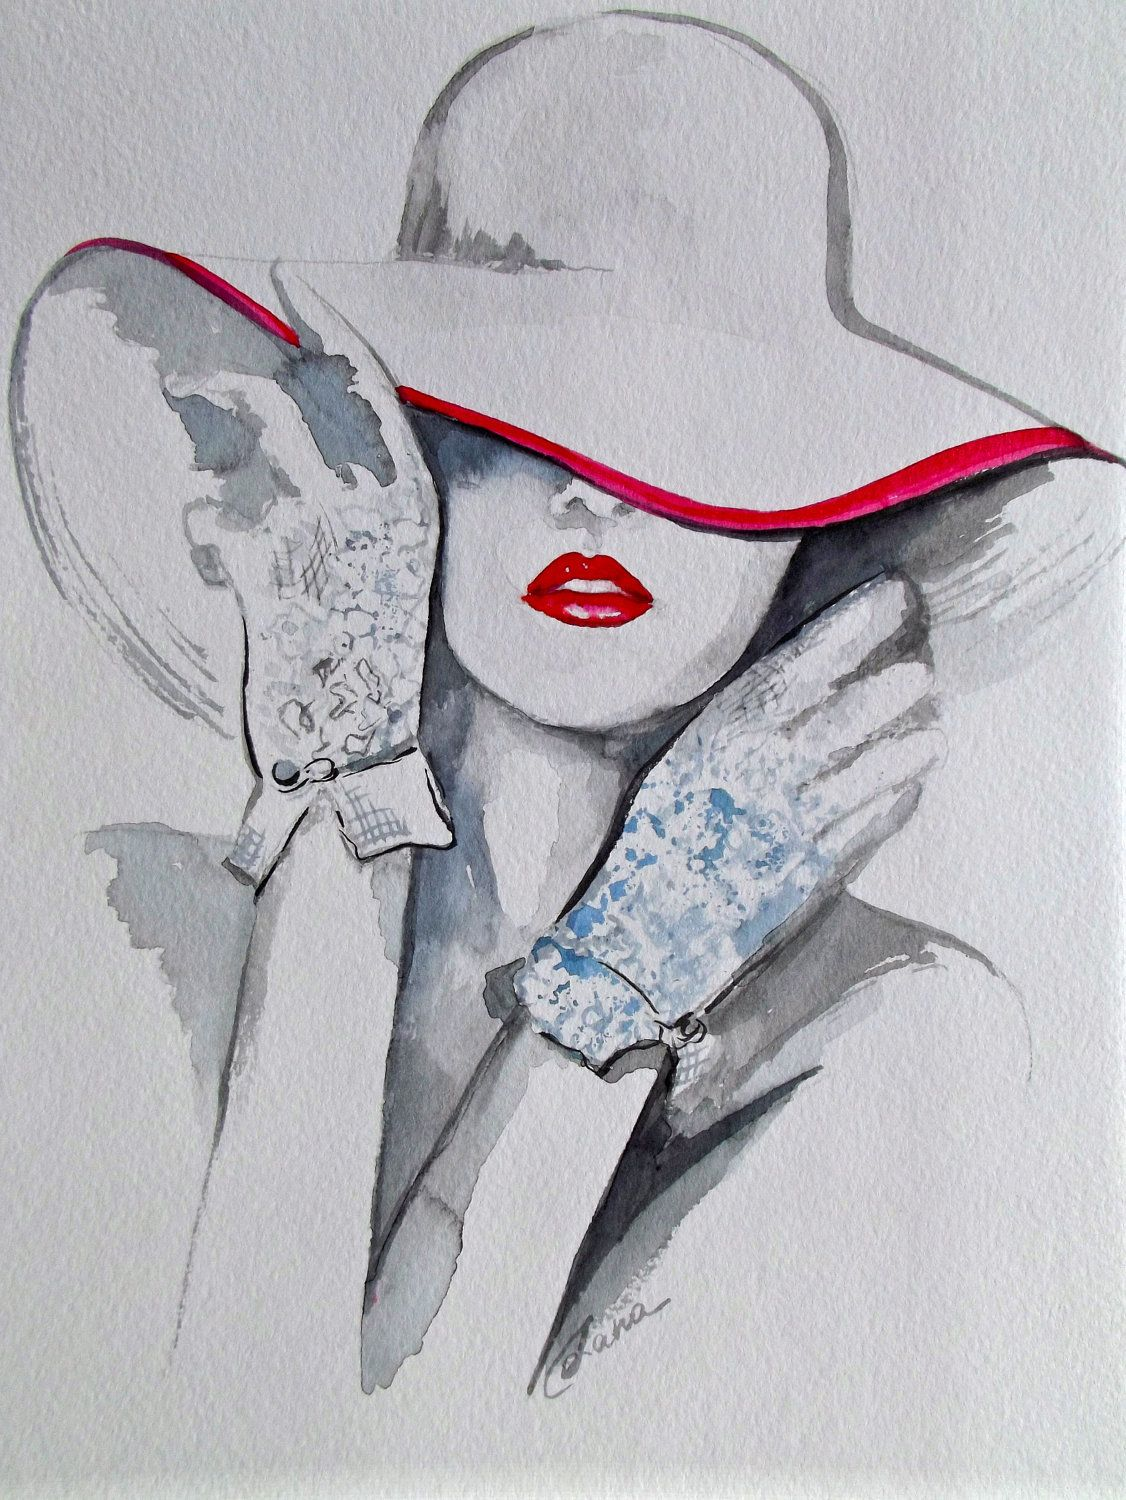 COLOR ❤ BLANCO + ROJO ♡ Chanel Fashion Illustration Art Original Watercolor  Painting by Lana e0e644b4ce712